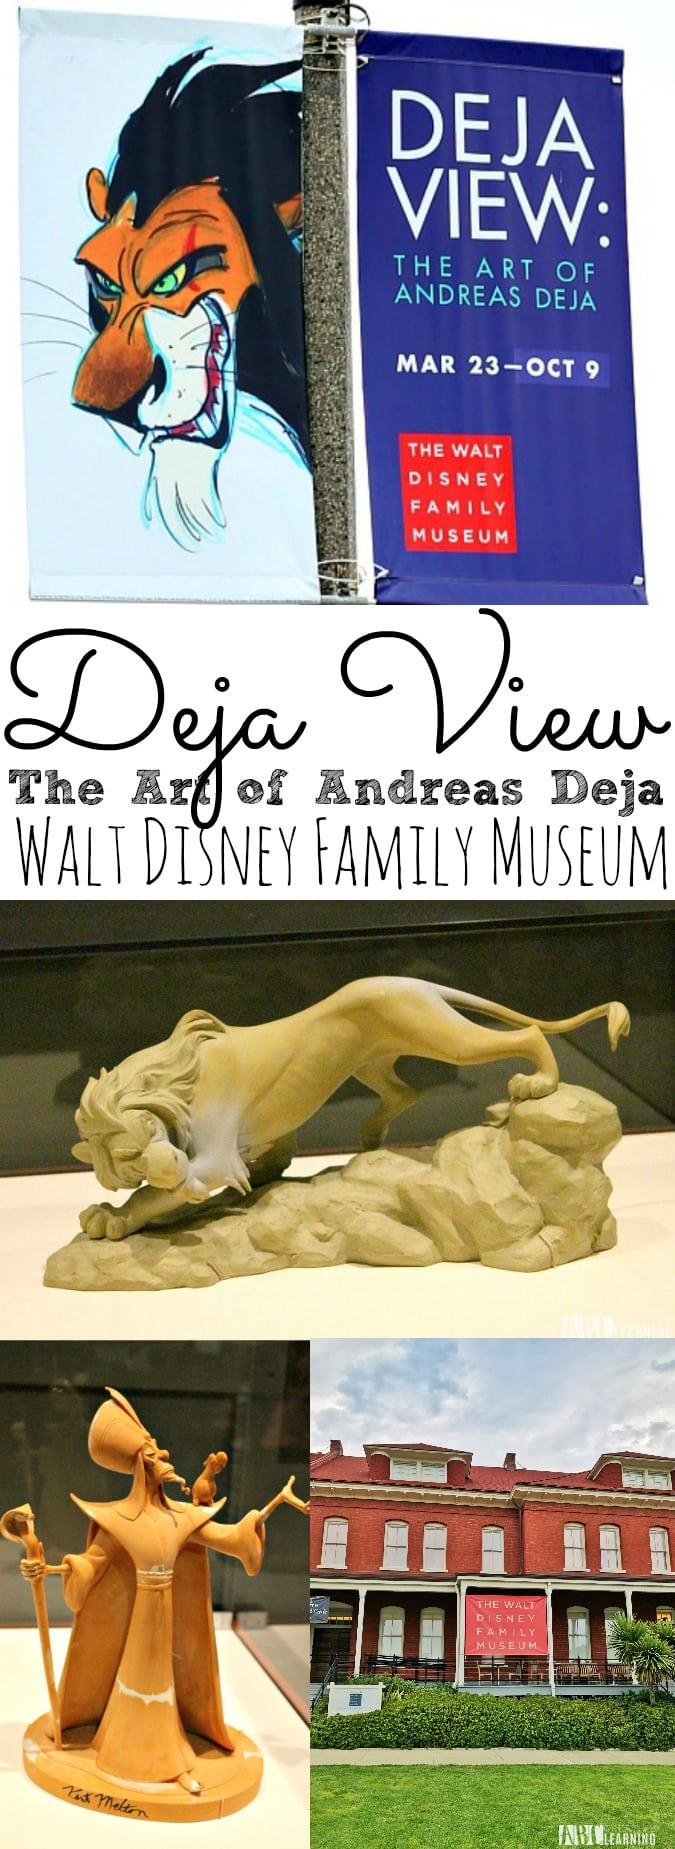 DEja View of Andreas Deja Details at the Walt Disney Family Museum